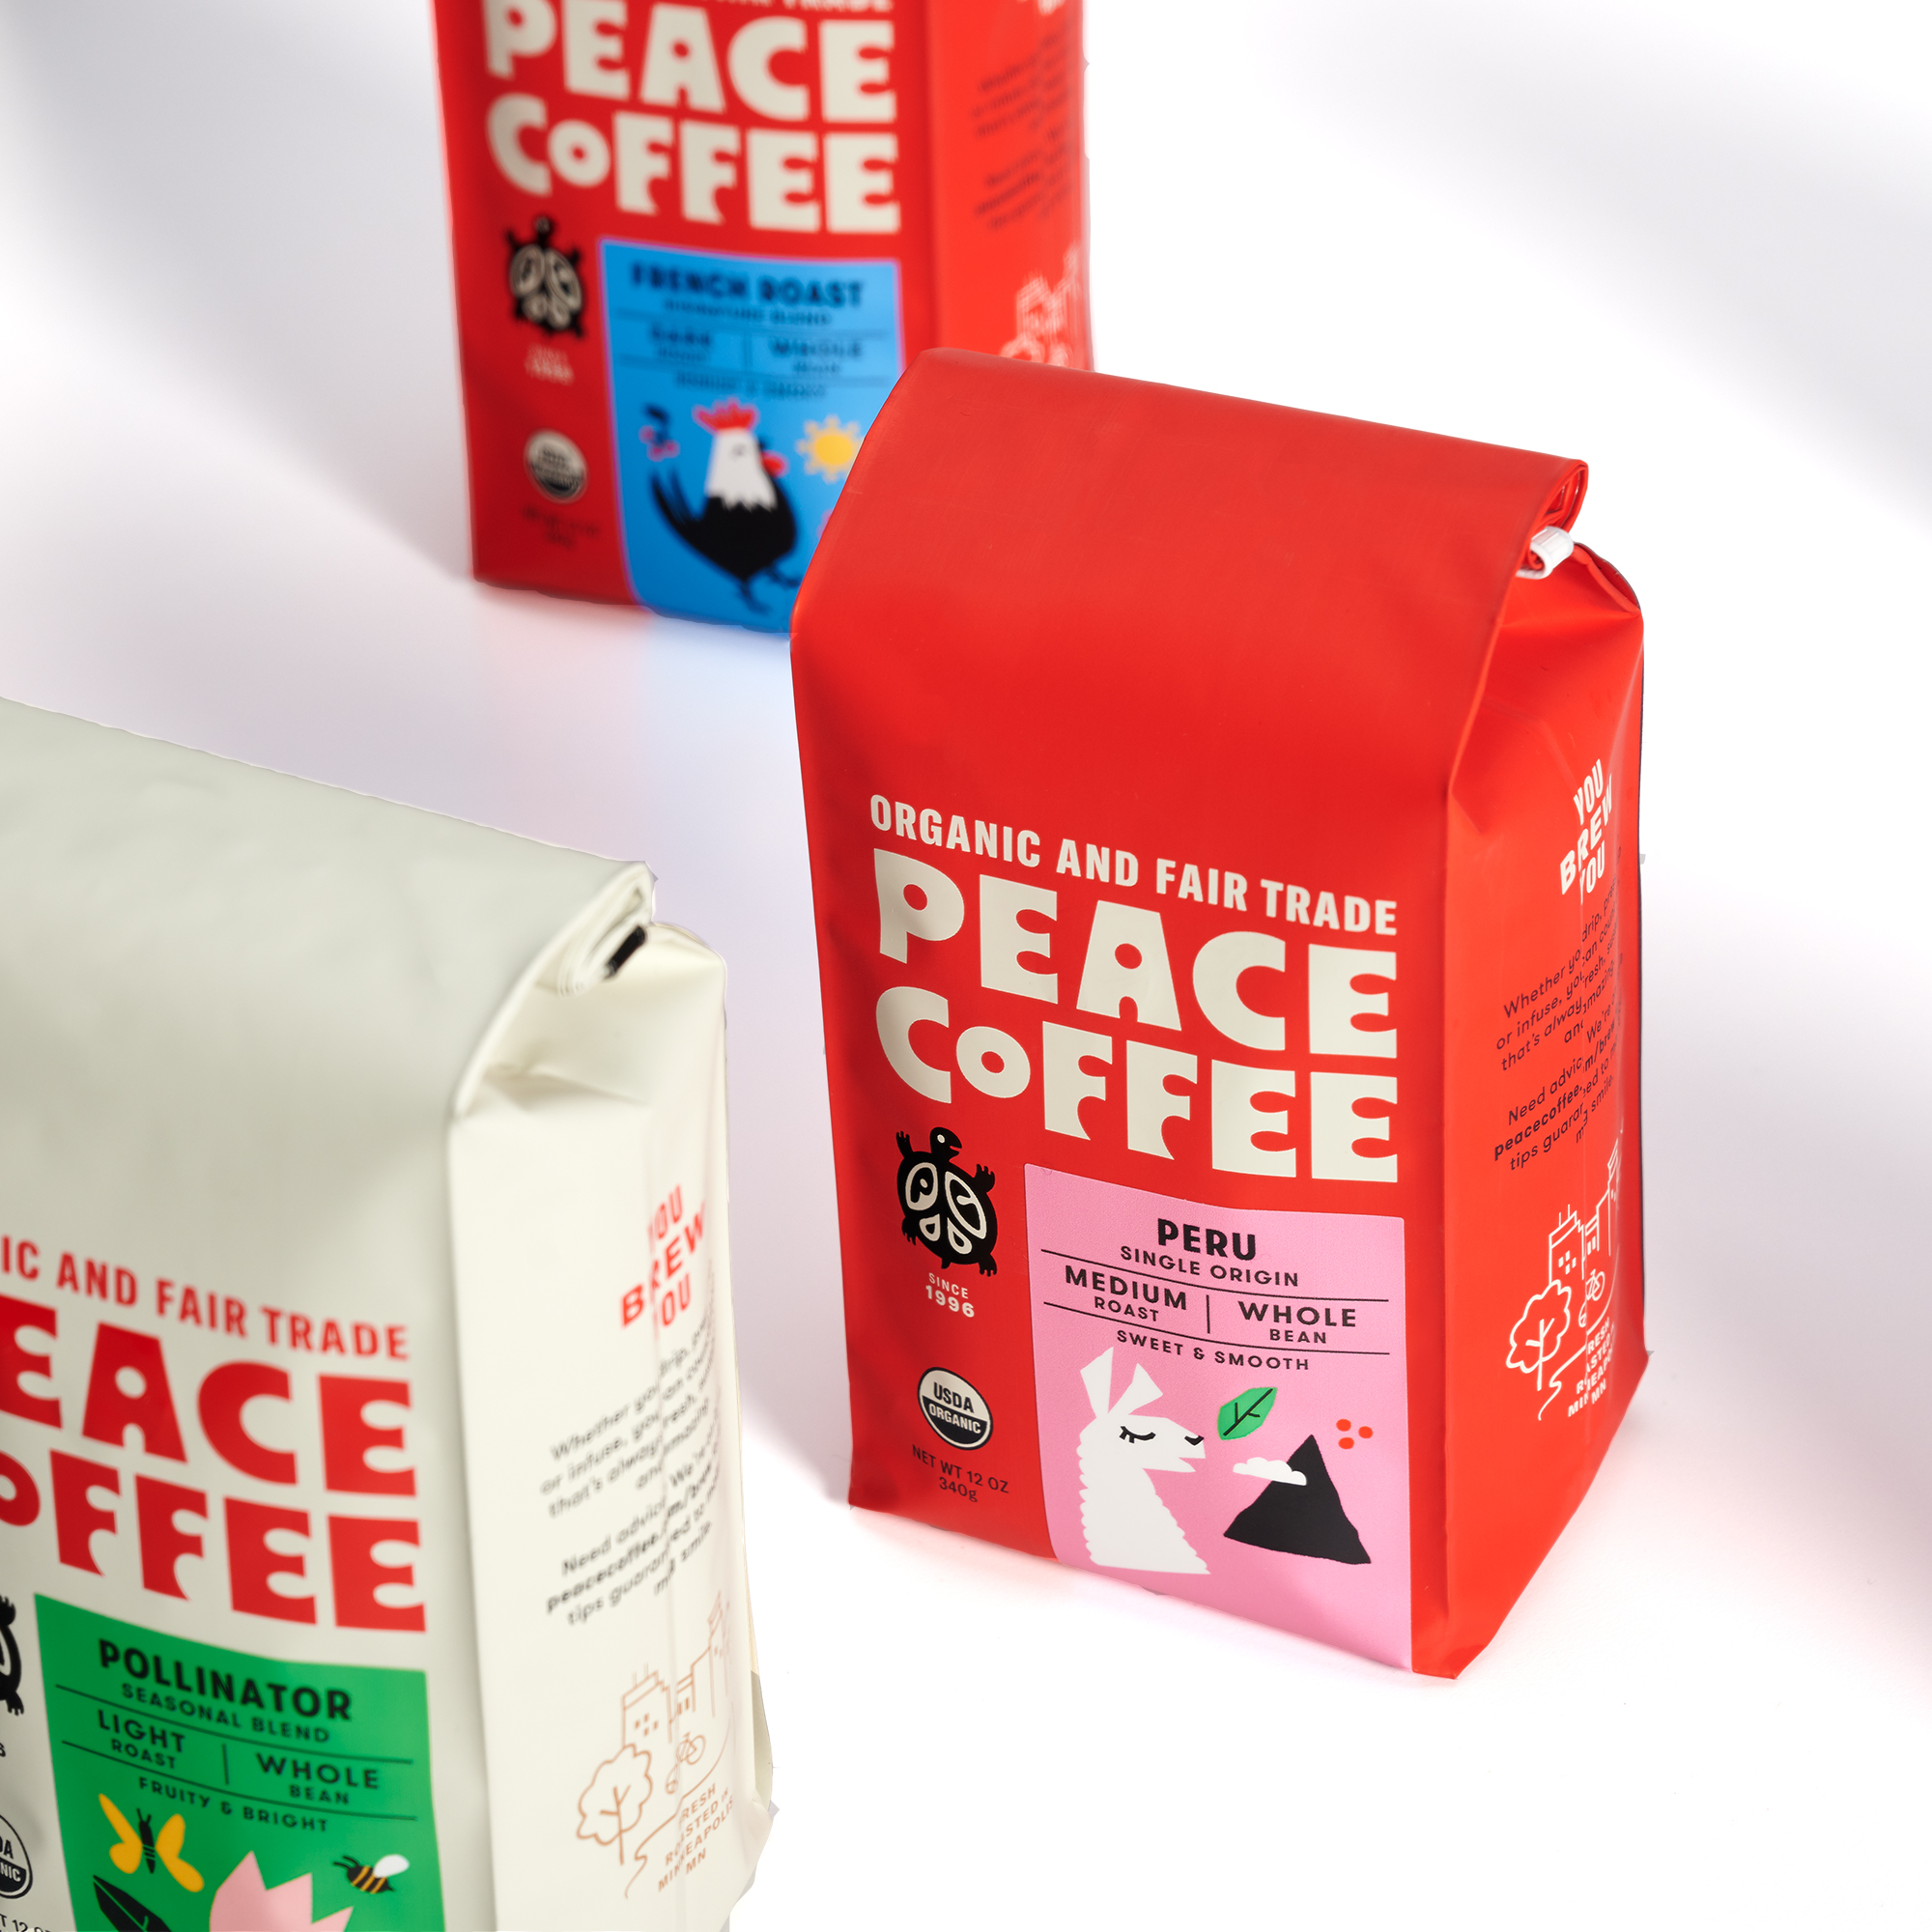 Peace Coffee packaging redesign by Abby Haddican Studio in Saint Paul, Minnesota.